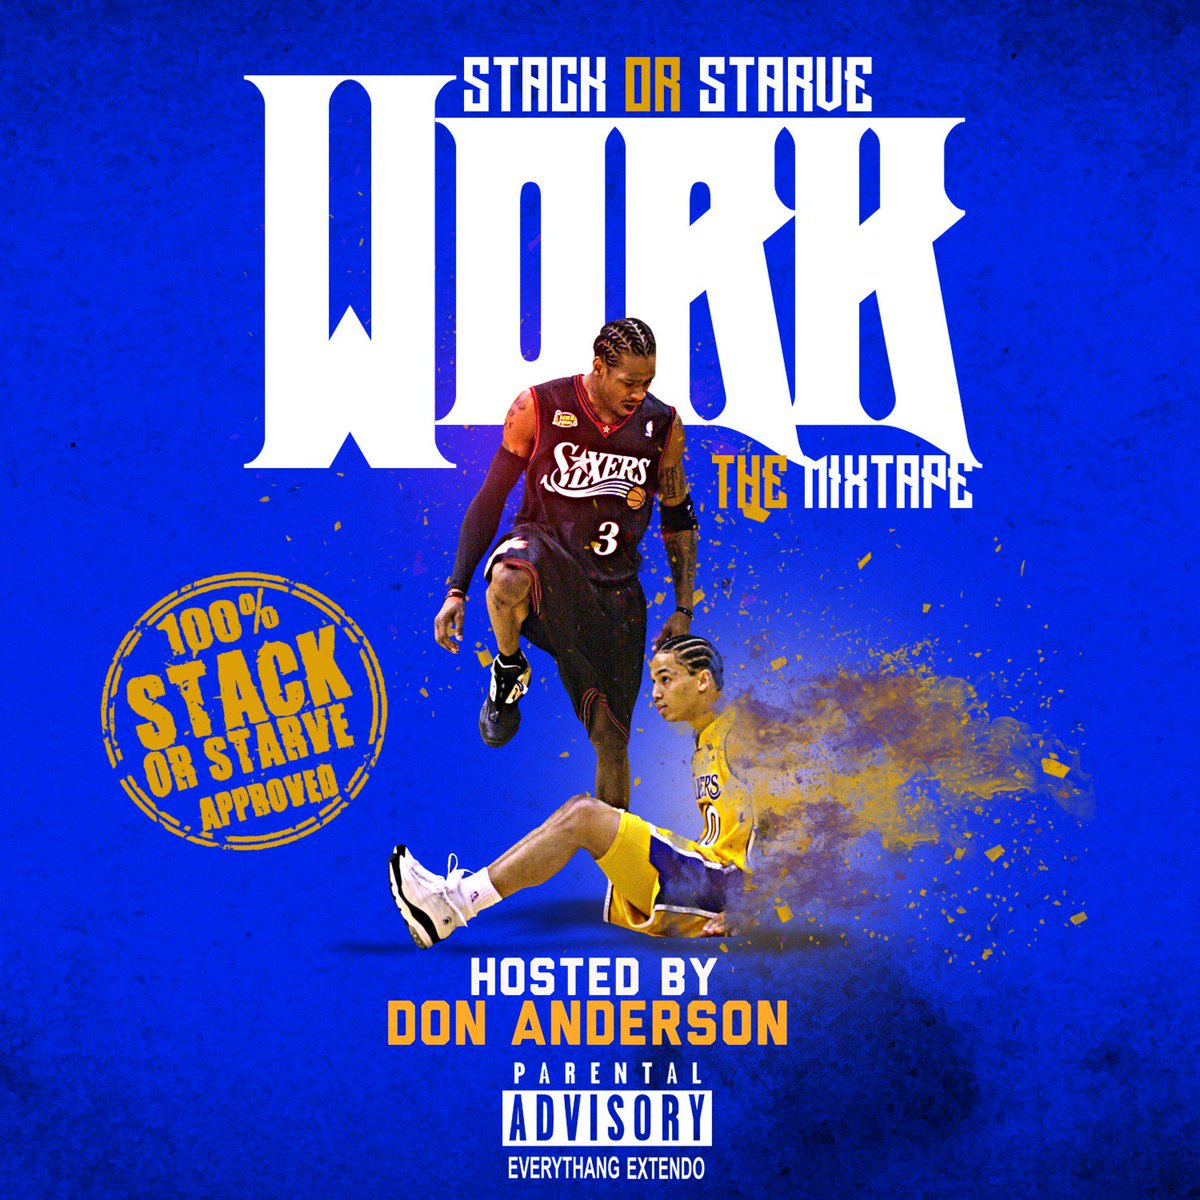 4 SLOTS LEFT! MUST BOOK NOW! MIXTAPE RELEASES FRIDAY! DM FOR PLACEMENT INFO!! HOSTED BY @StackorStarvDJS @DaDonGED! EXCLUSIVE @LiveMixtapes RELEASE! LETS WORK!!  #ThaReportDotCom #ThaReport #StackOrStarve #StackOrStarveApproved #StackOrStarveDjs #EverythingzWorkin #Indie #Music